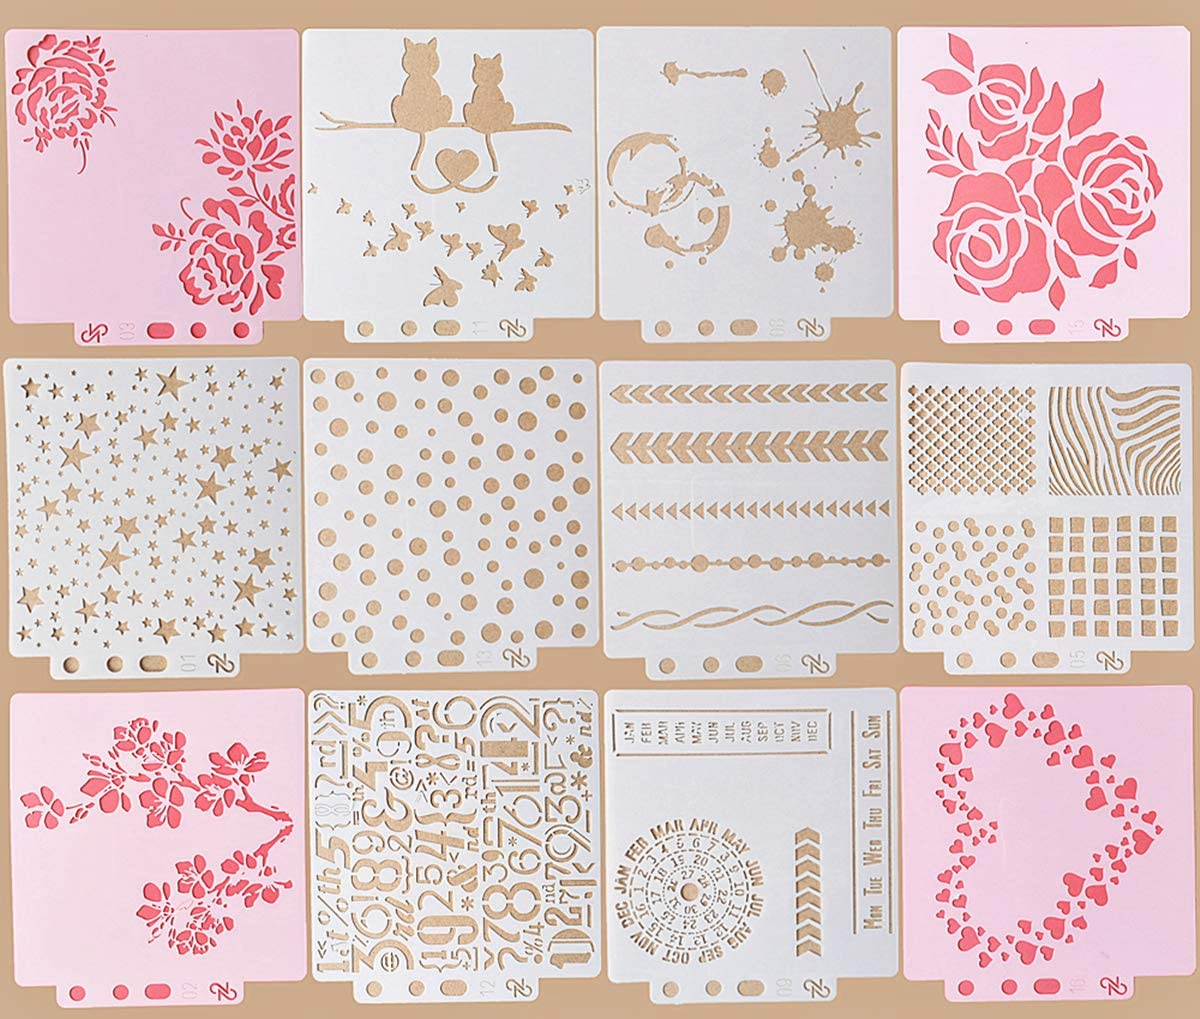 Reusable Plastic Stencil,12 Pack (5.6x5.1 Inch) Different Design Pattern Stencil Flower Lace Digital Drawing Template for Wall Cake Scrapbook Painting Card Making